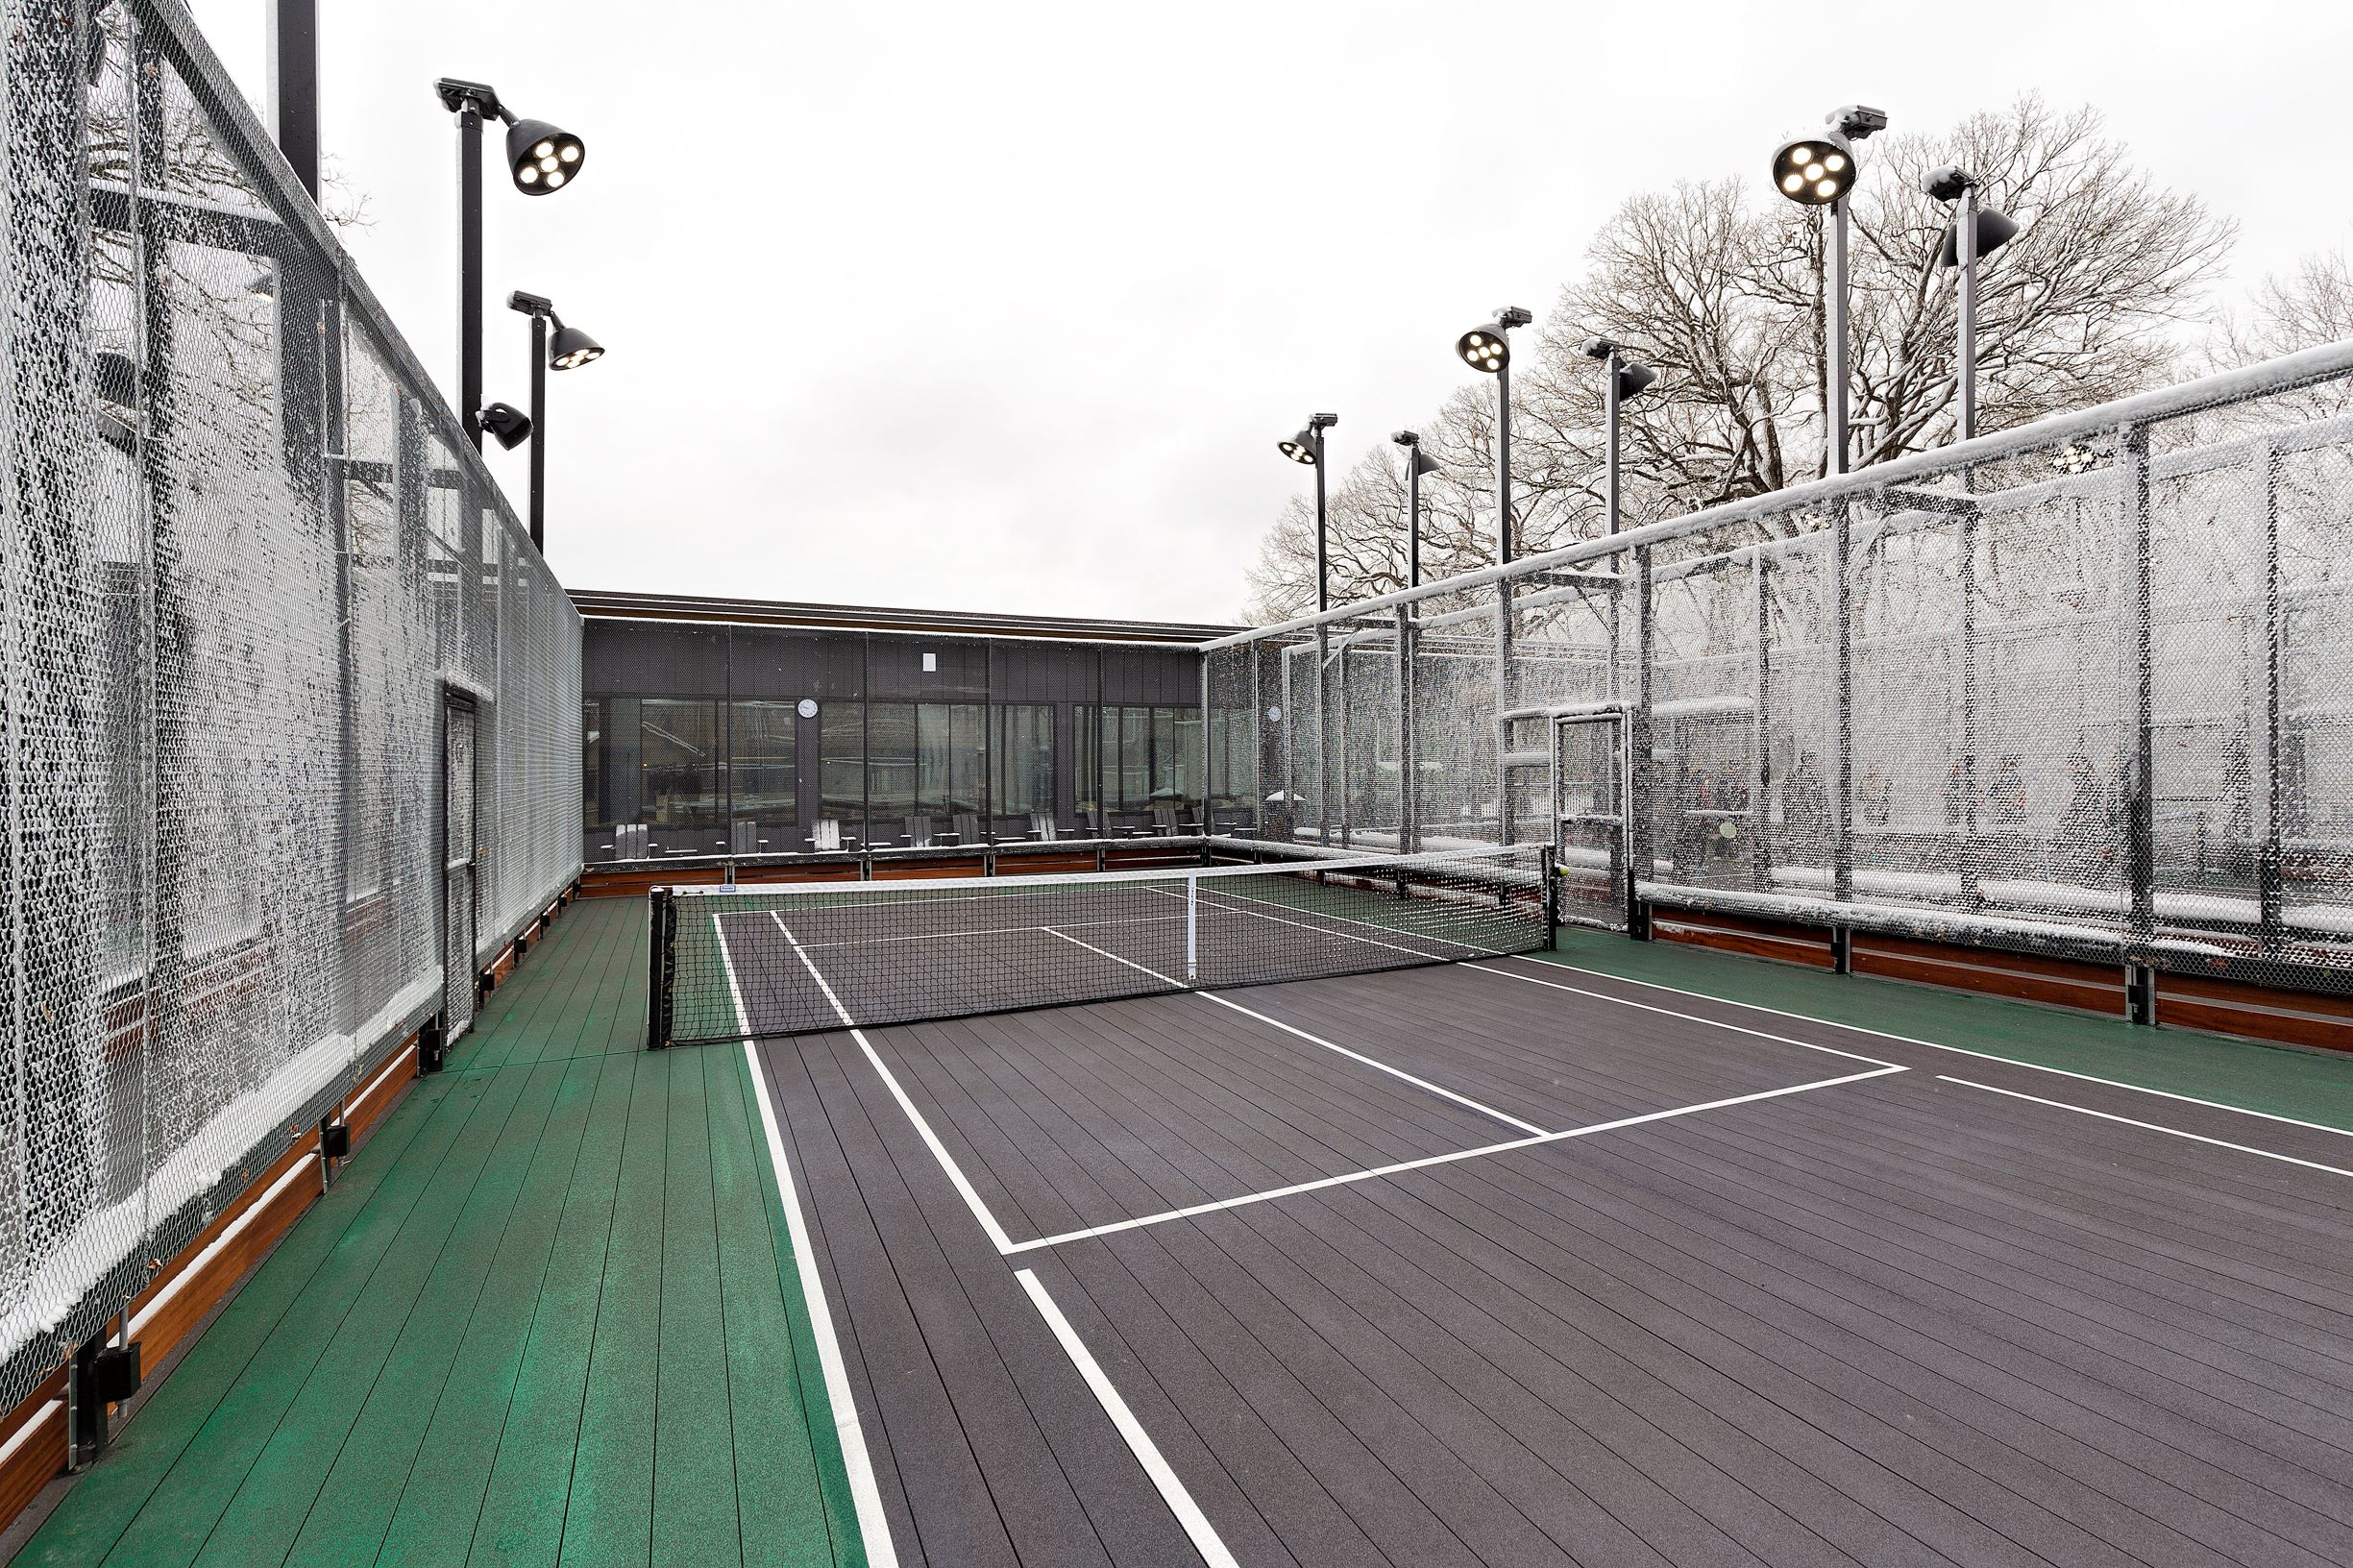 Birchwood  Birchwood Paddle Tennis Club, Highland Park, IL